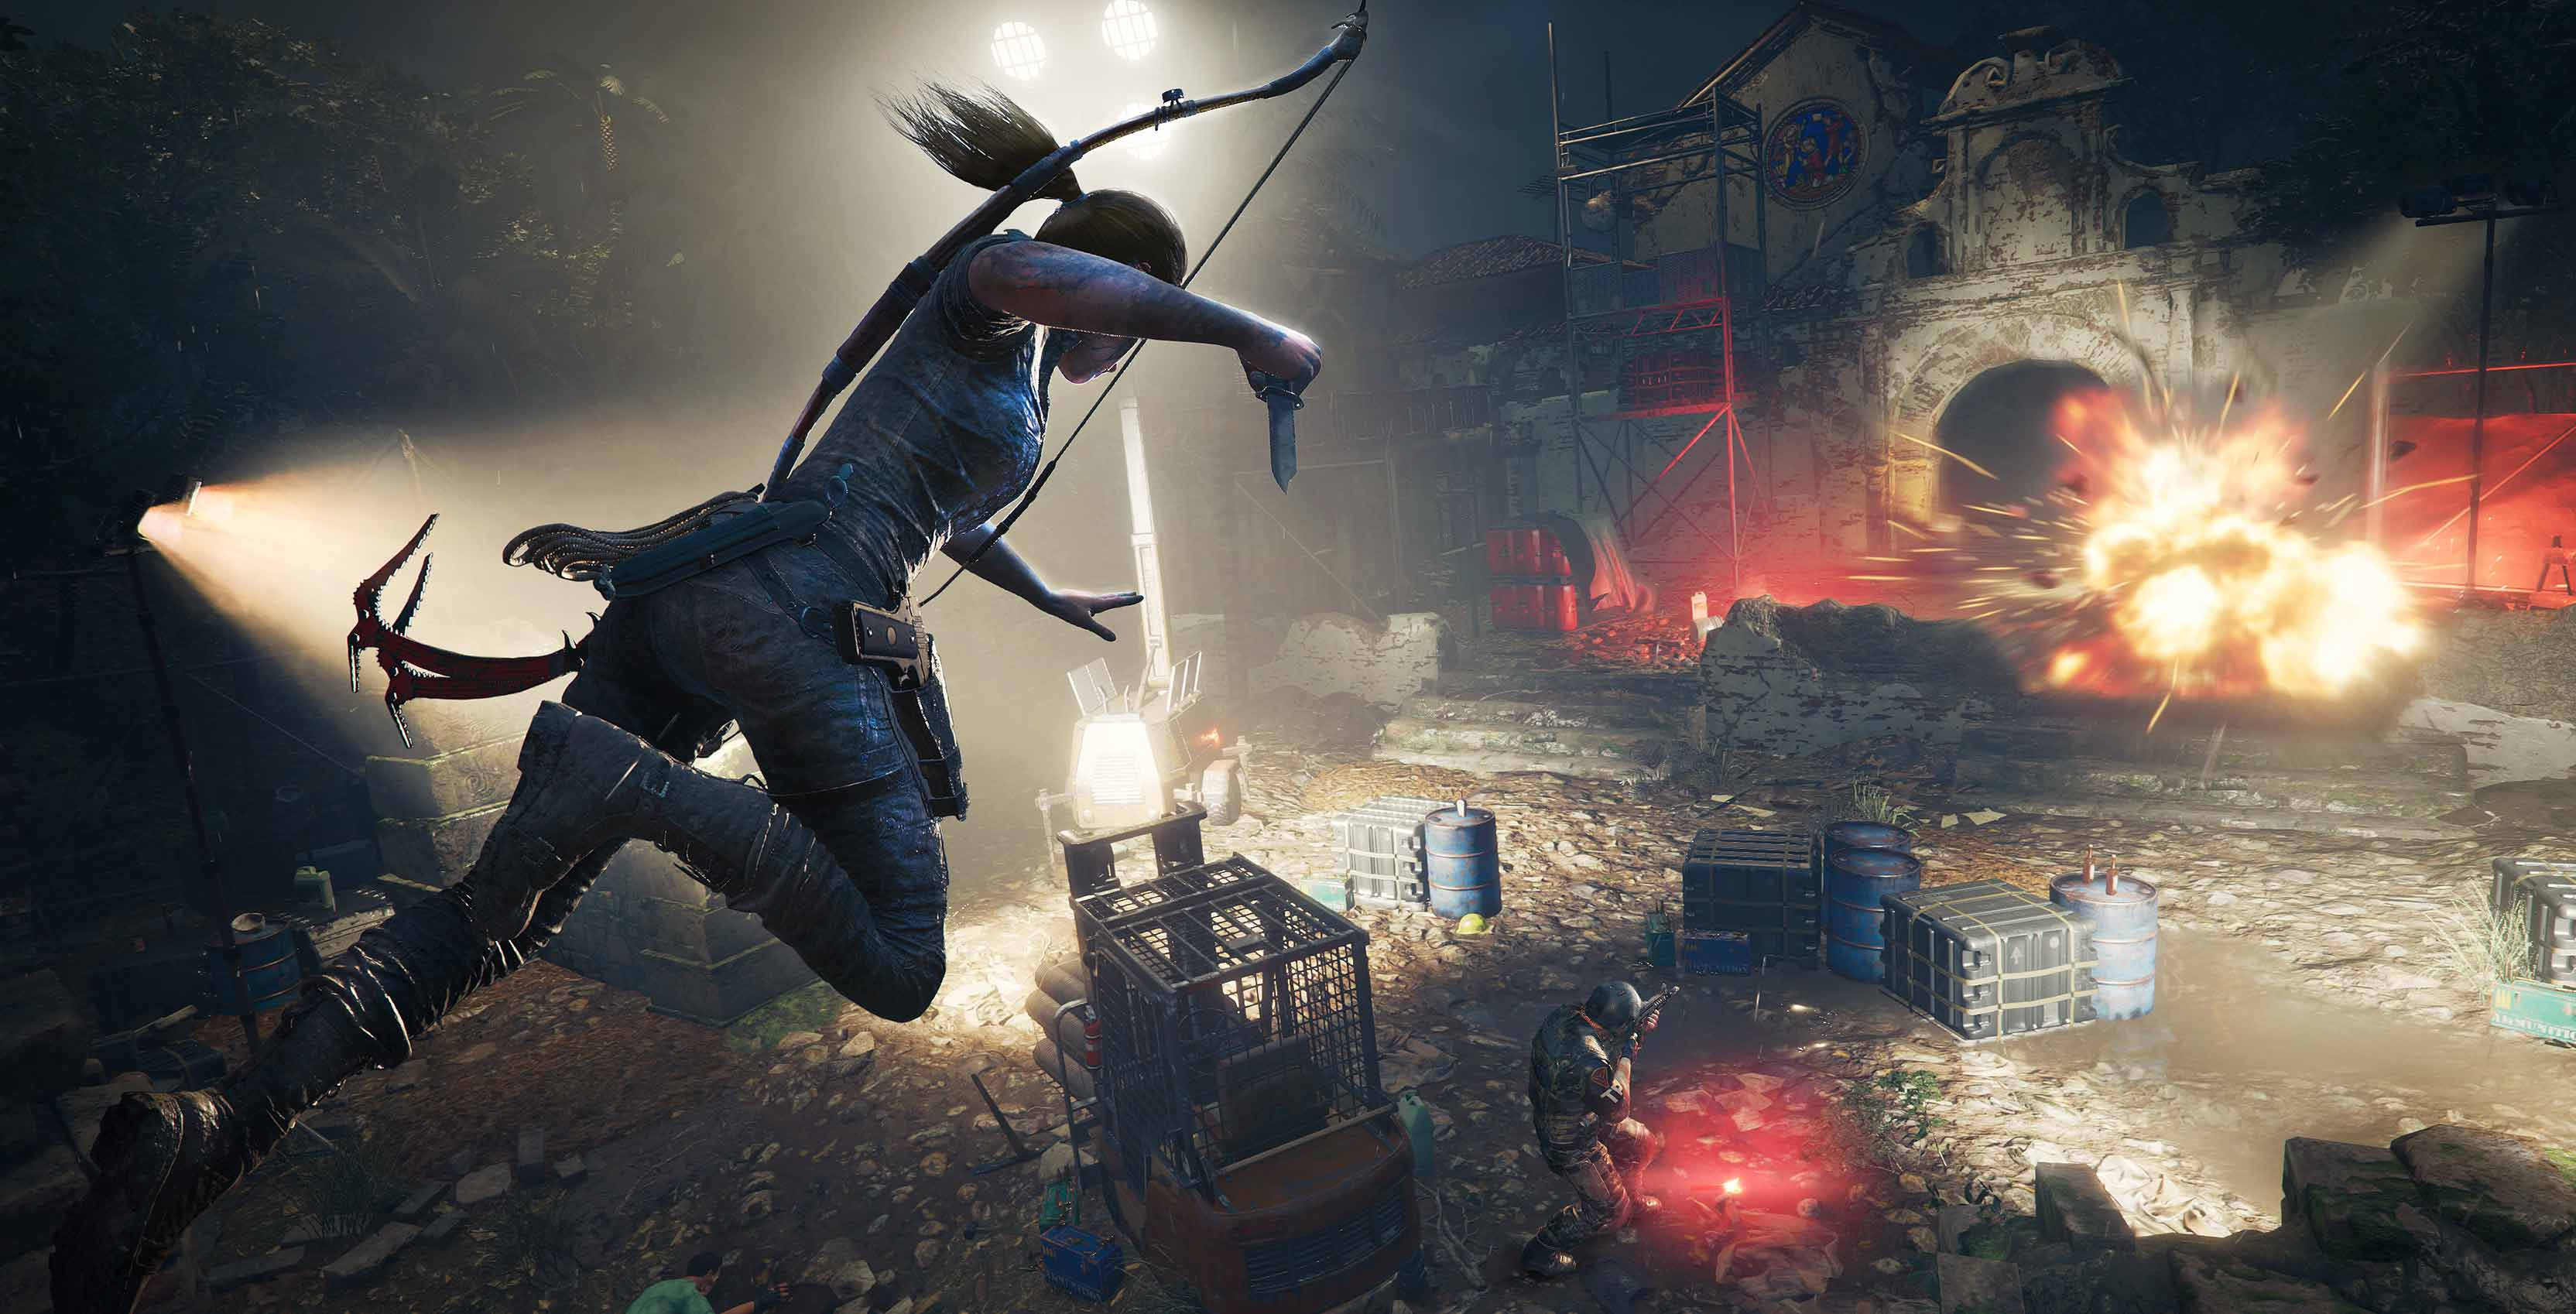 Shadow of the Tomb Raider combat